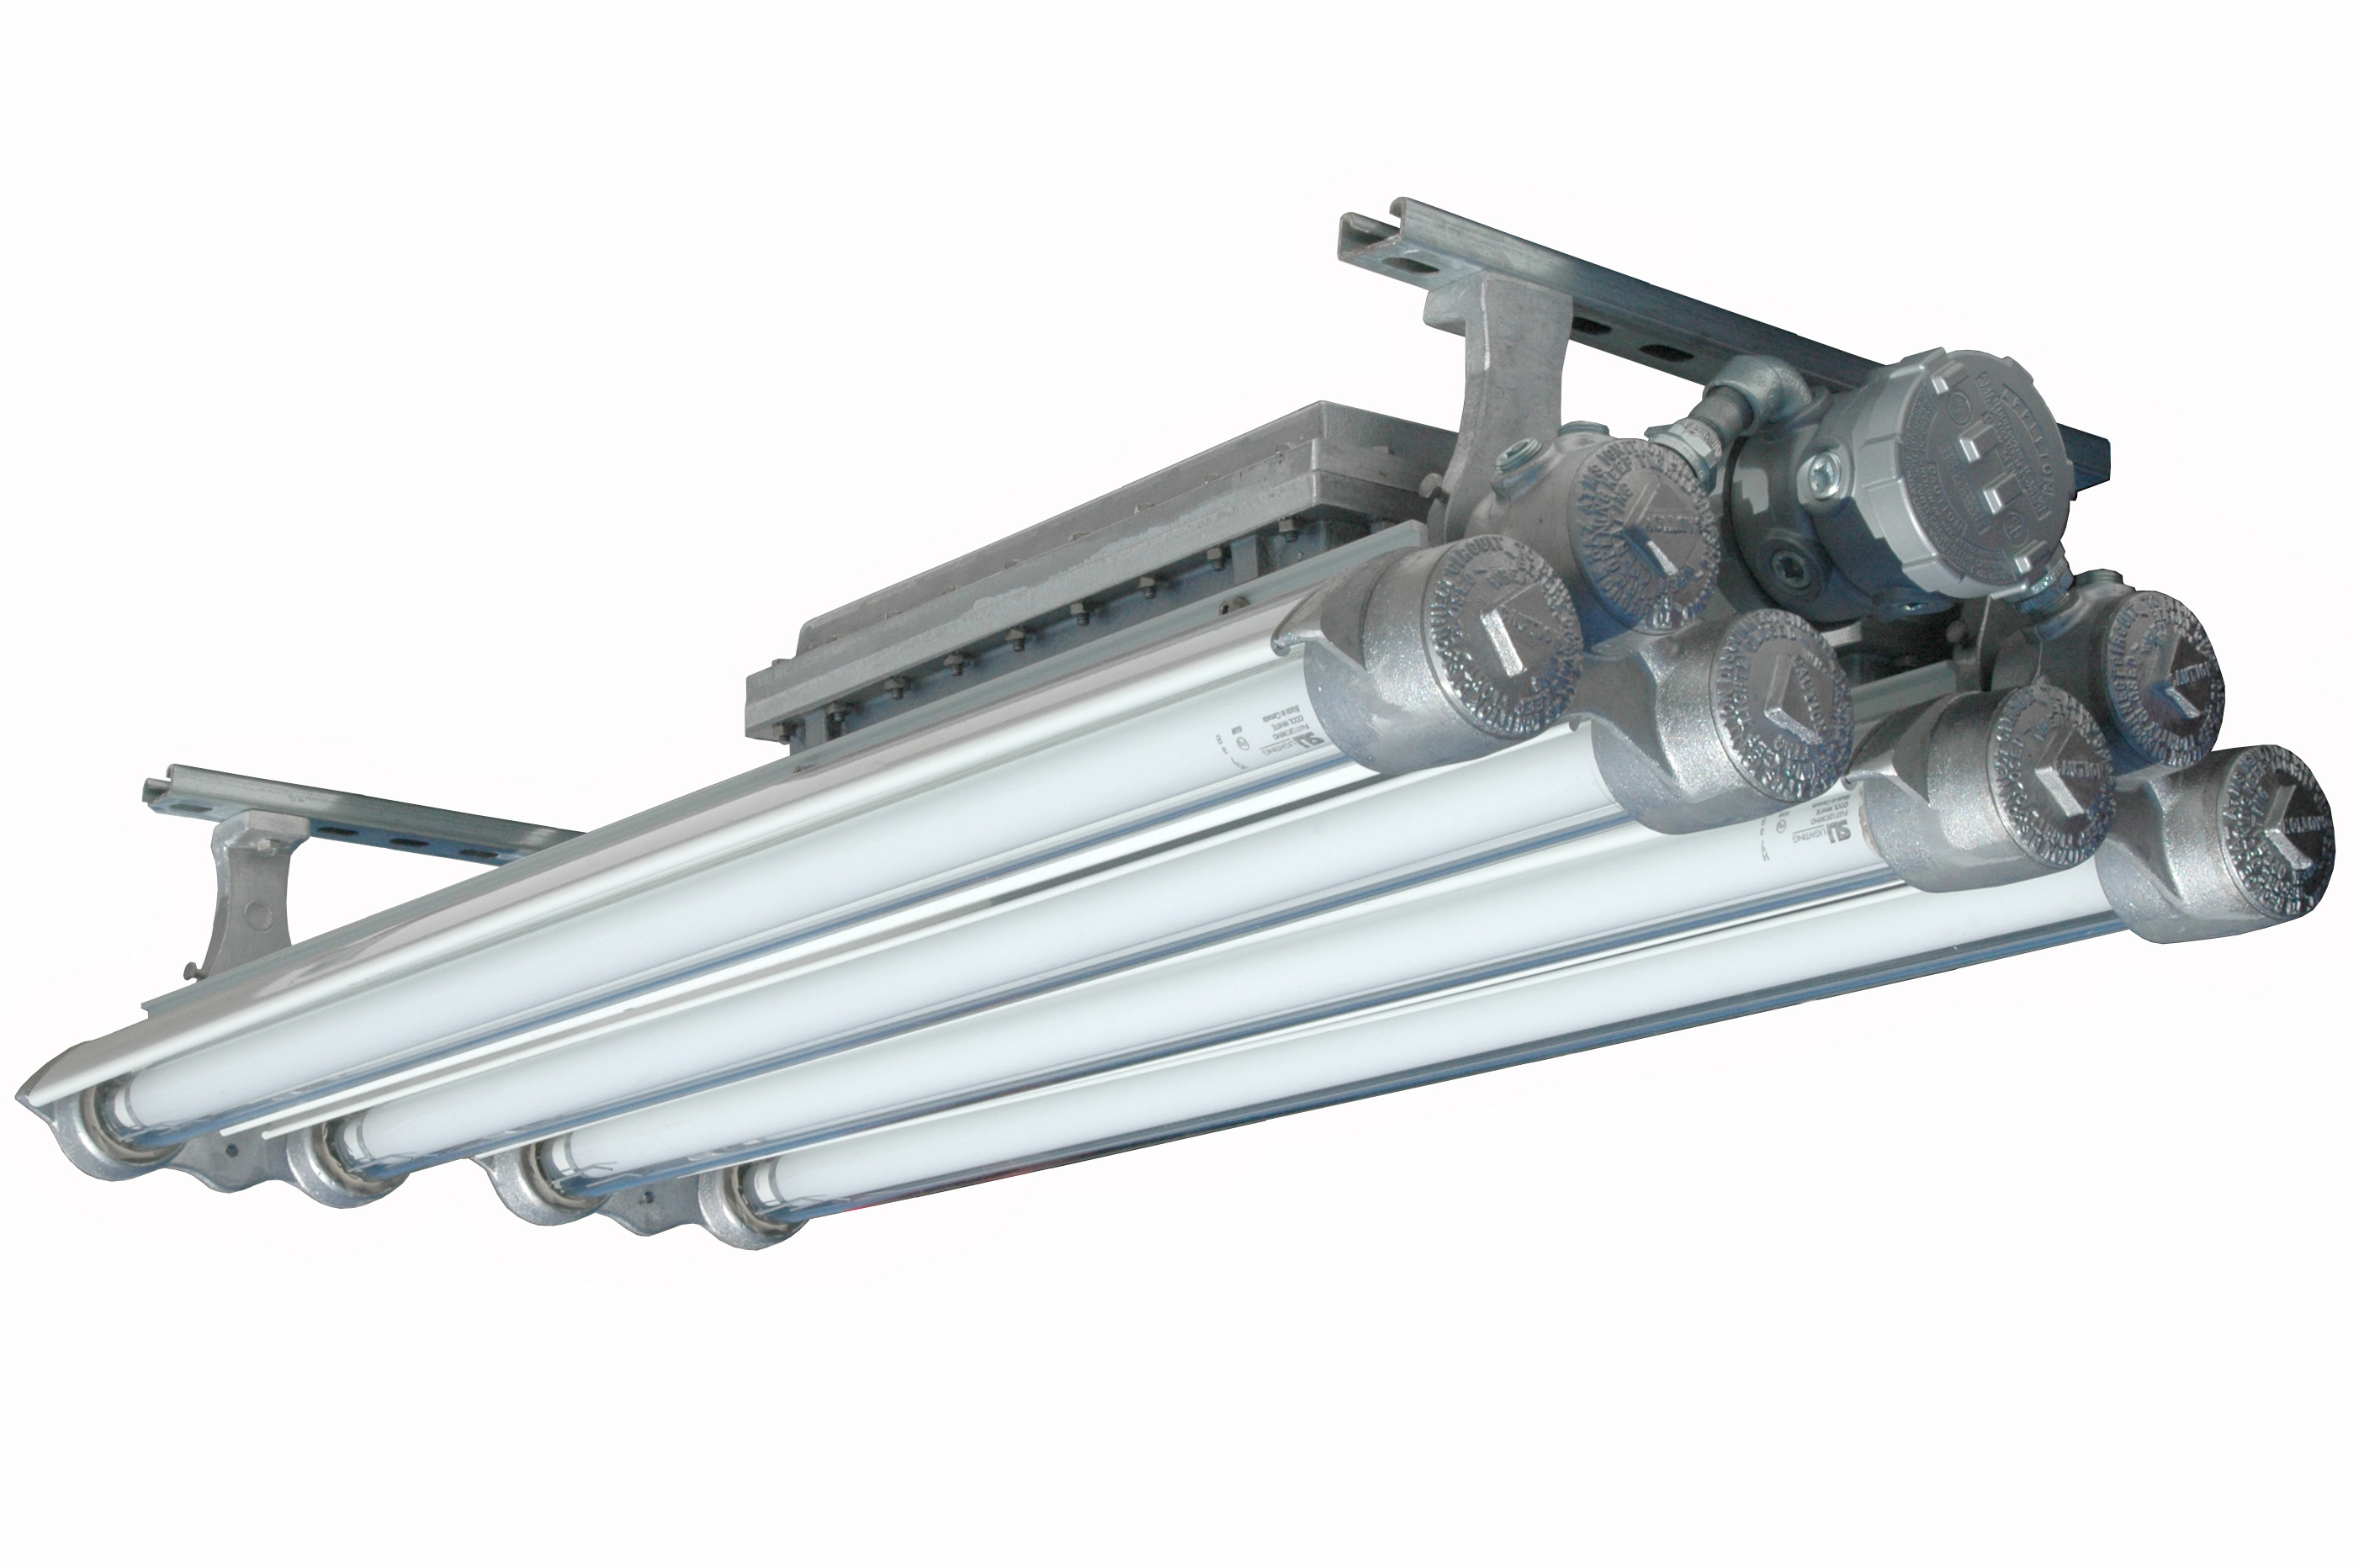 160 Watt Explosion Proof Uv Fluorescent Light Fixture Released By Larson Electronics